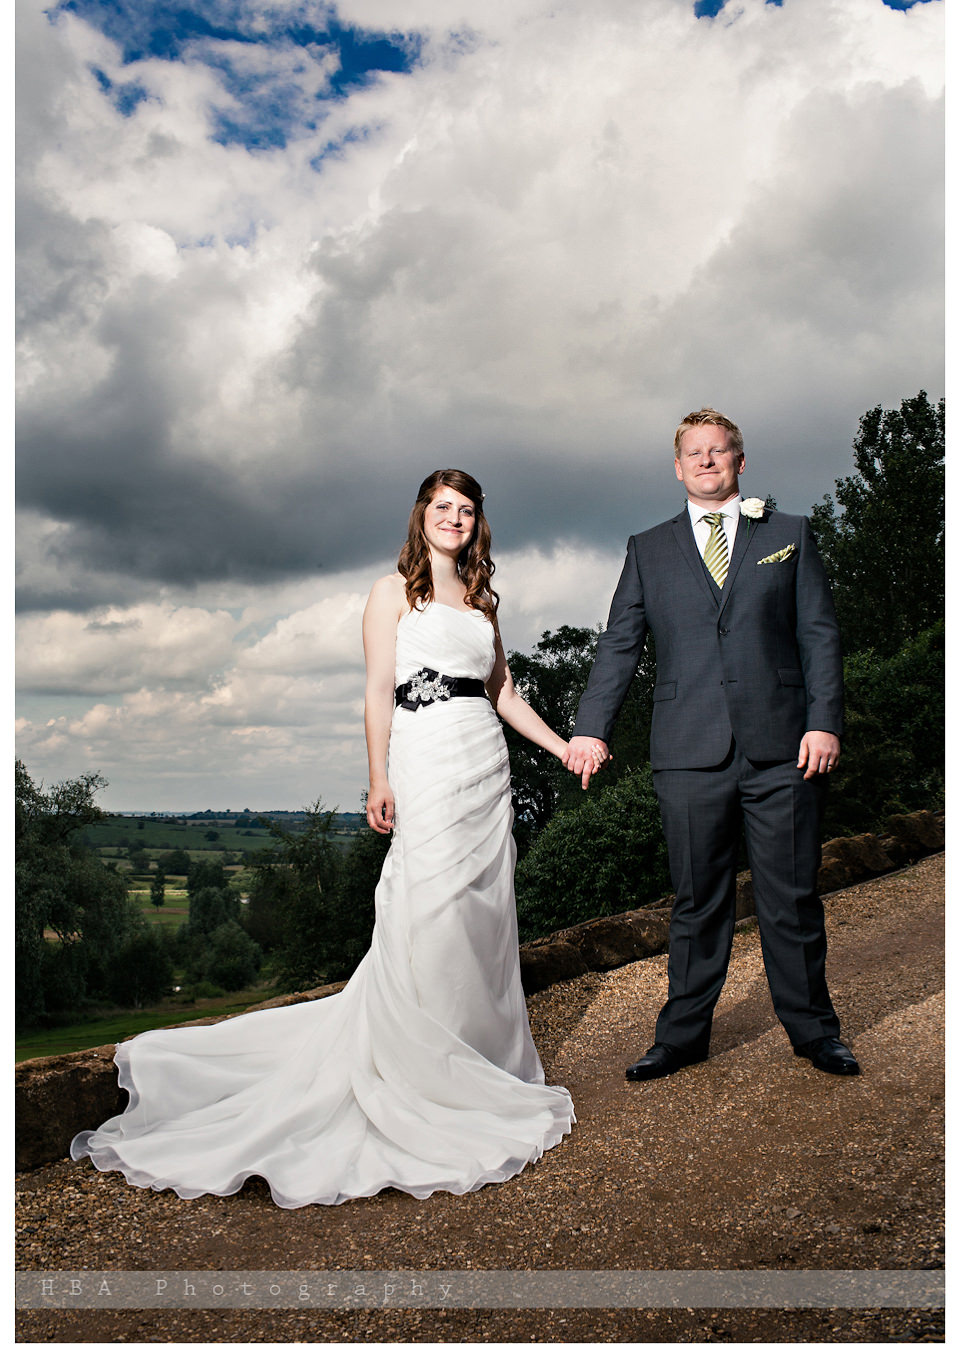 The wedding of Josey & Sam at Hellidon Lakes Golf & Spa Hotel, by contemporary Derbyshire photographers HBA Photography. Photos of the couple in the grounds